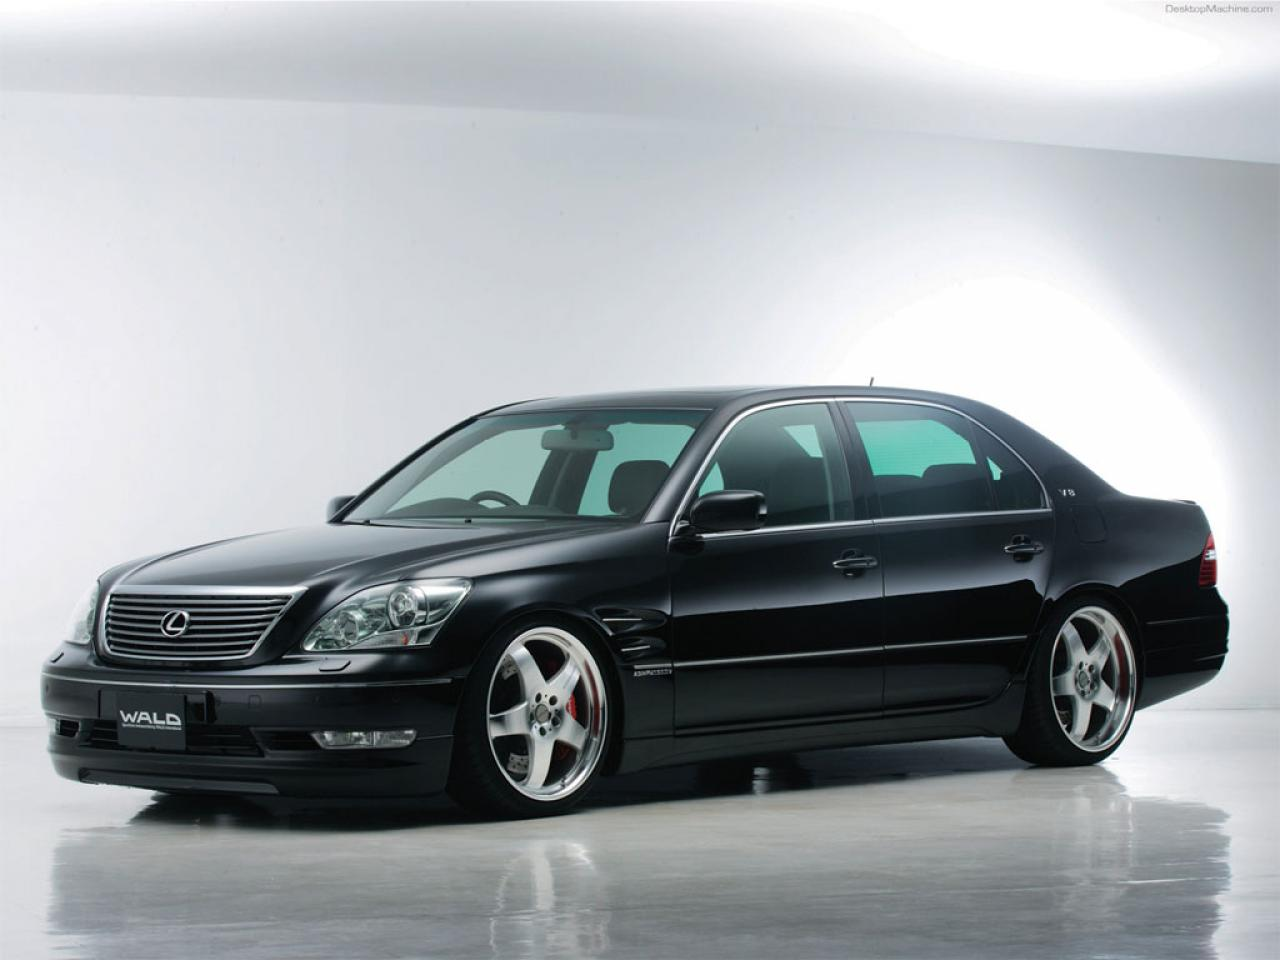 2006 lexus ls 430 information and photos zombiedrive. Black Bedroom Furniture Sets. Home Design Ideas